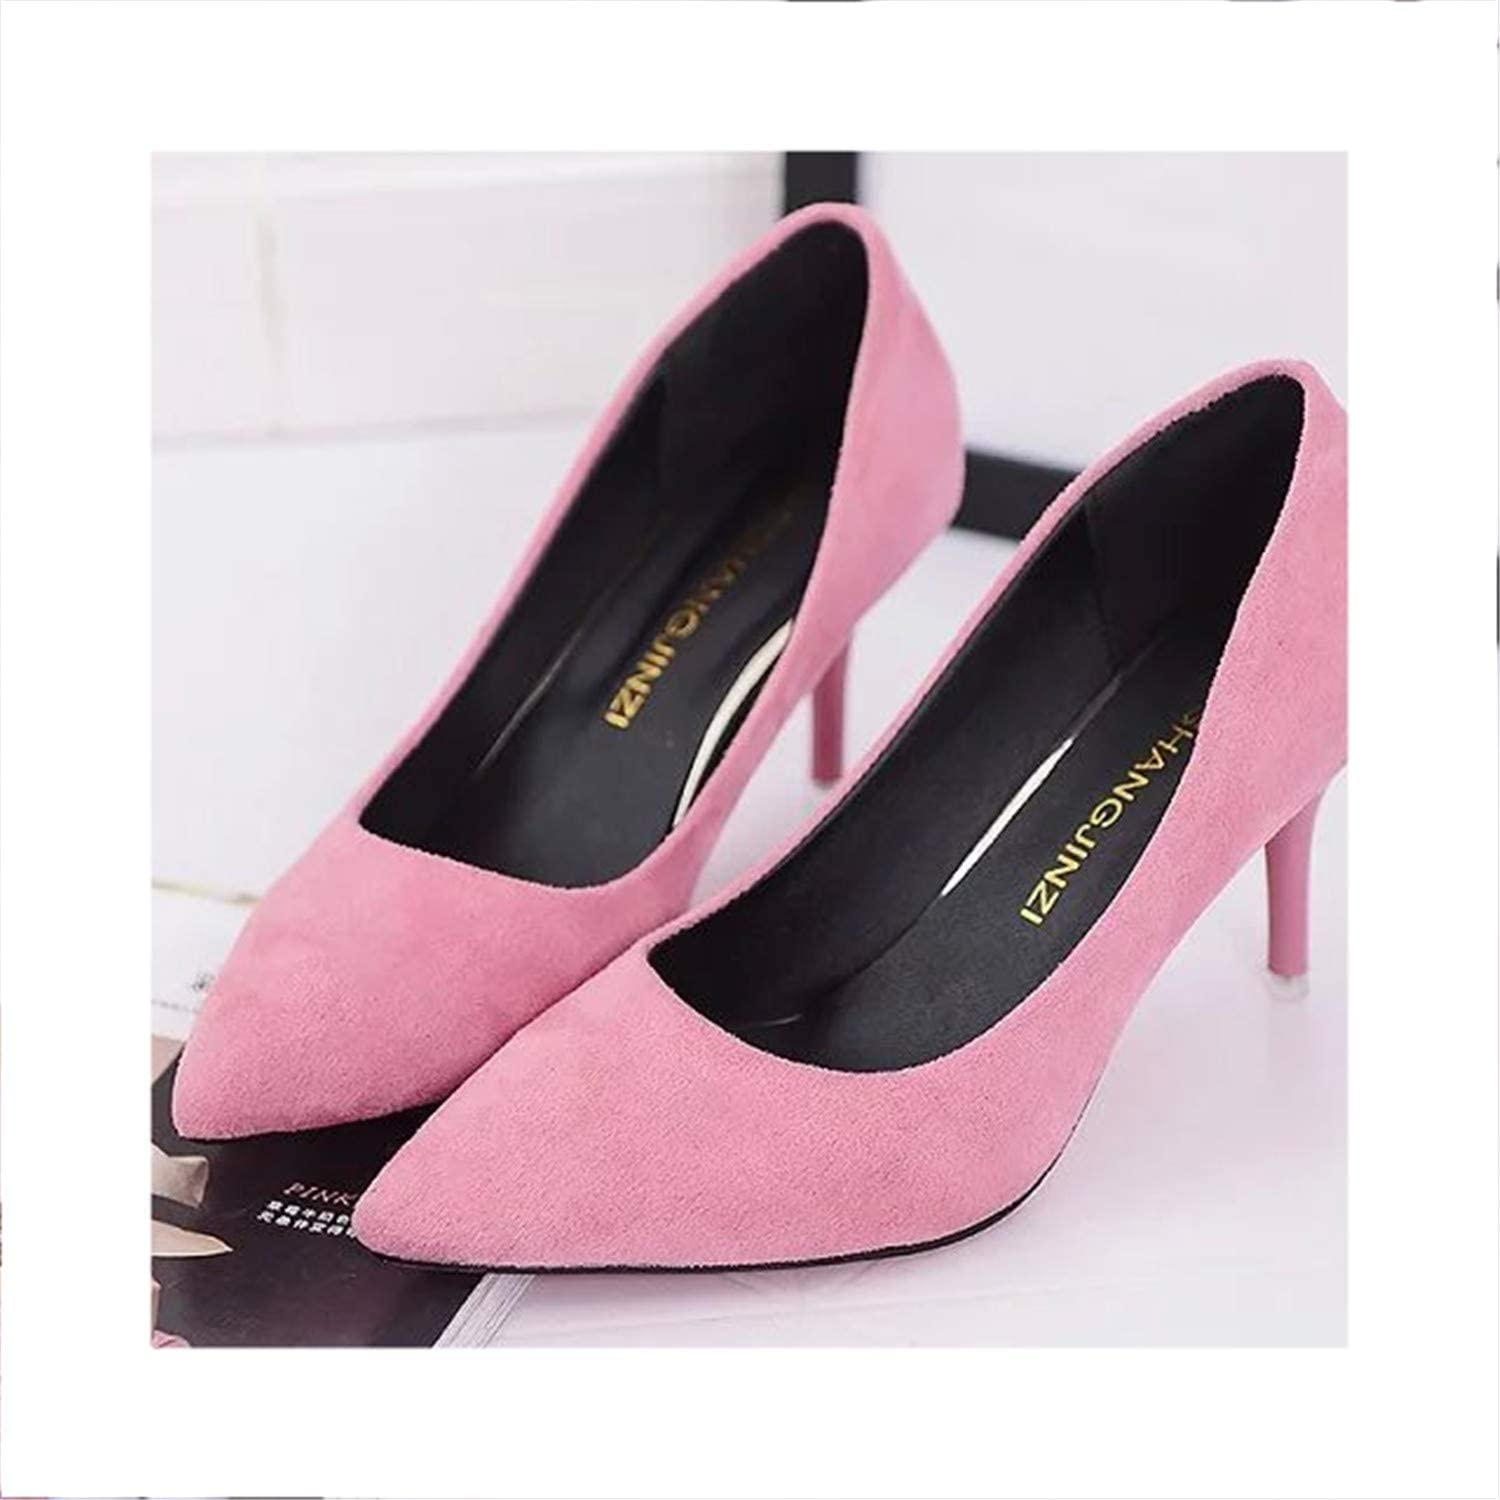 Women shoes Pointed Toe Pumps Dress shoes High Heels Boat shoes 146